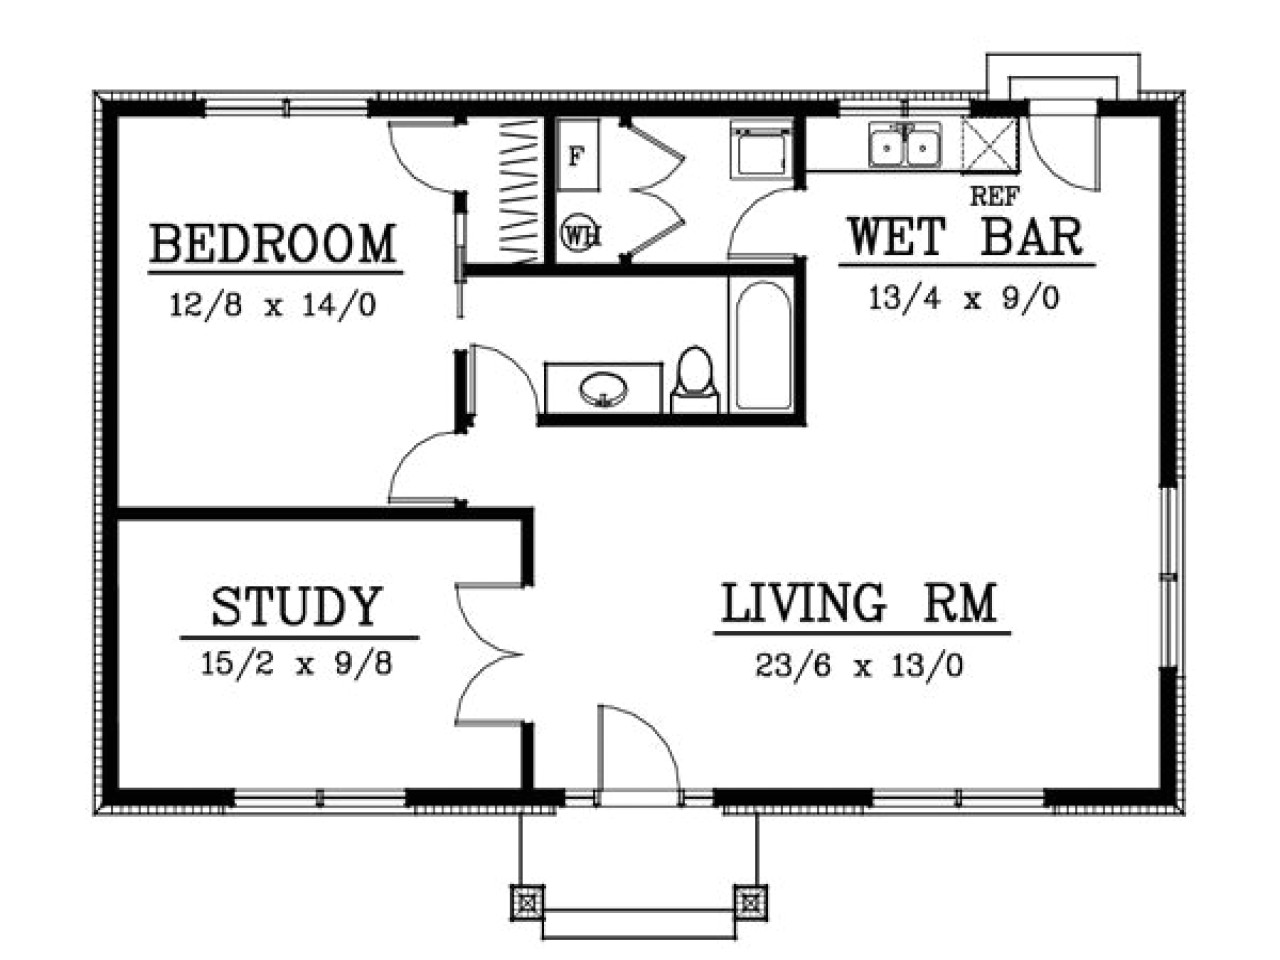 7eba4c1481988eb6 house plans 2 bedroom flat 2 bedroom house plans under 1000 square feet